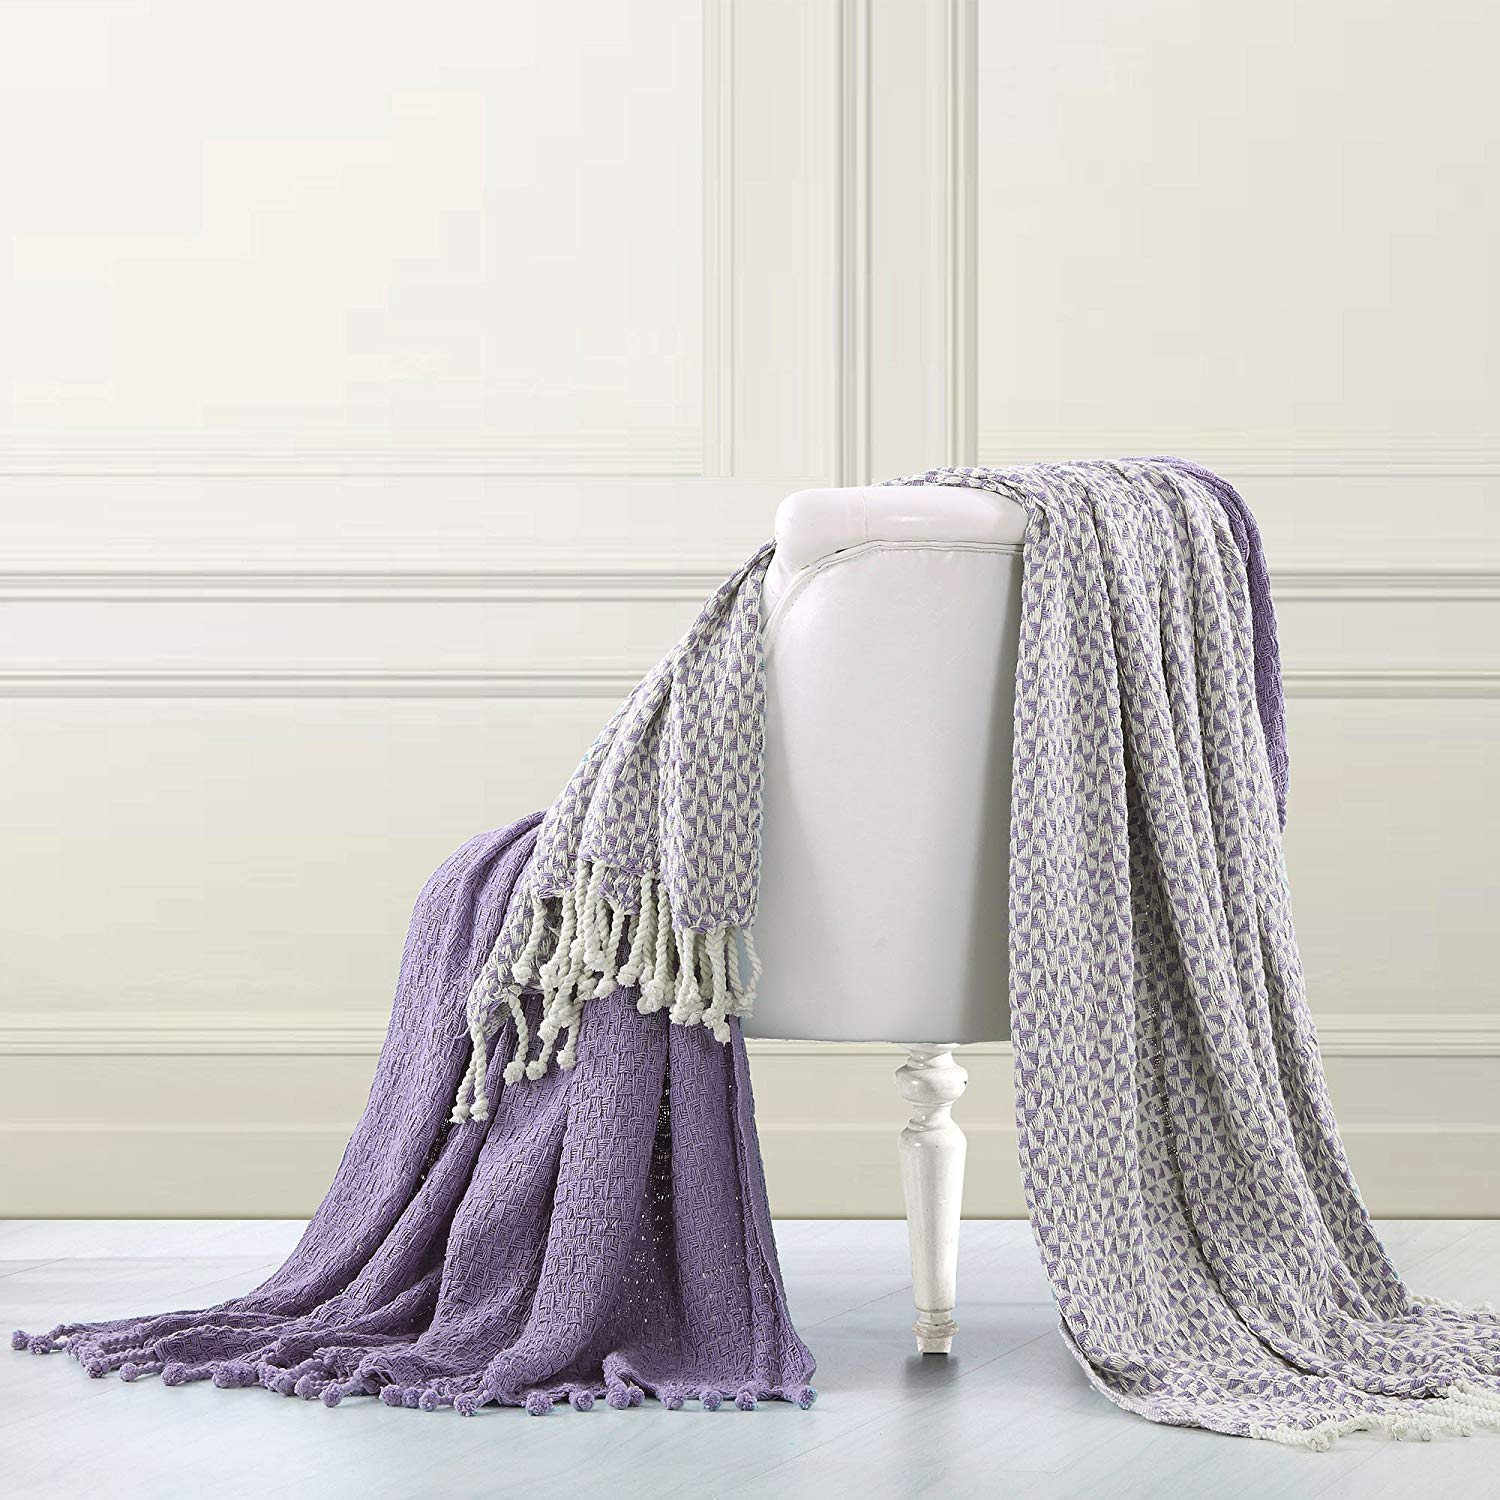 2 Piece 50 x 60 Inches Lavender Throw Blankets, French Country, Modern, Shabby Chic Style, Tasseled Ends, Solid, Reversible & Geometric Picasso Design, 100% Woven Cotton, Machine Washable